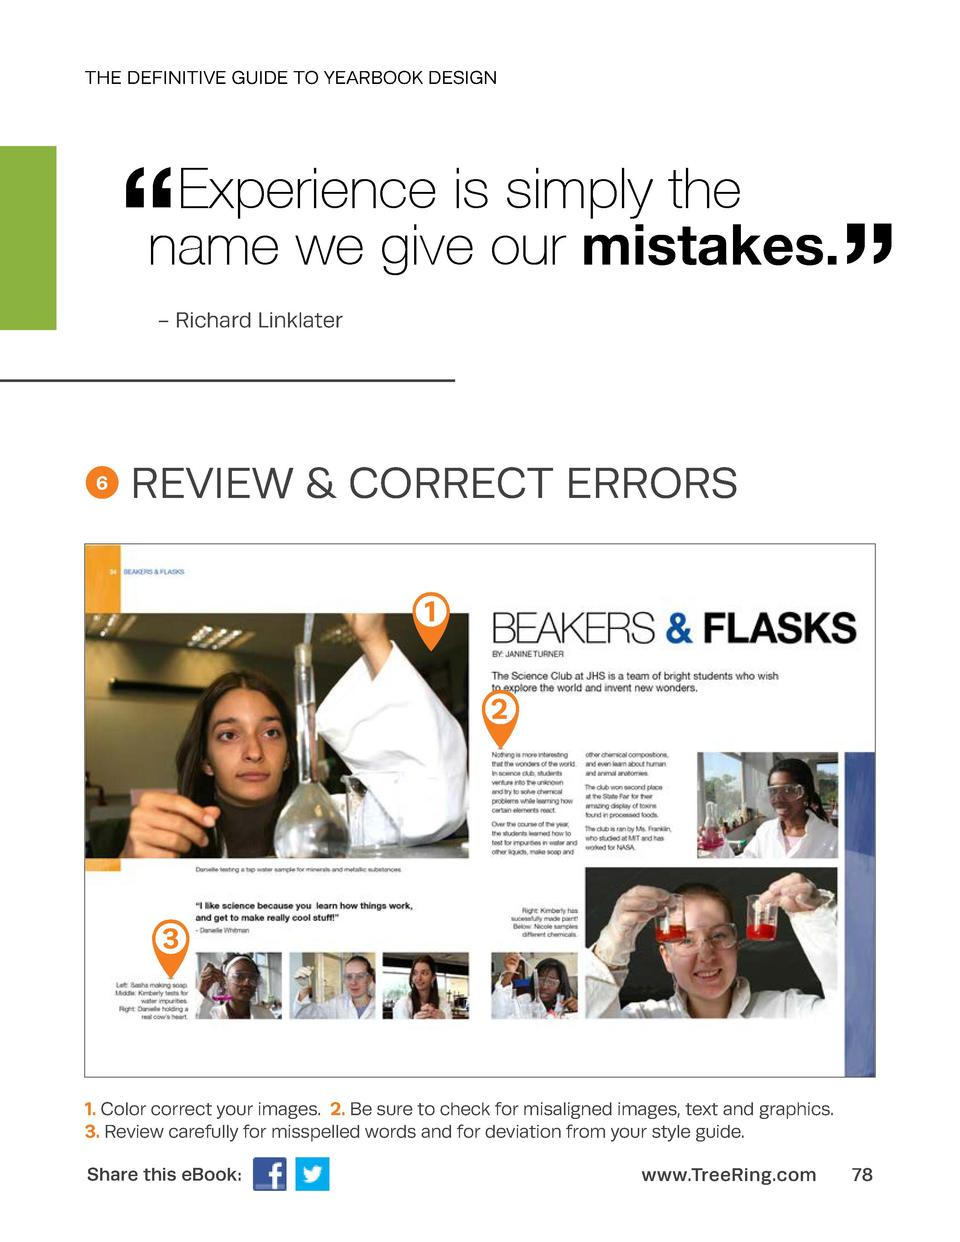 THE DEFINITIVE GUIDE TO YEARBOOK DESIGN       Experience is simply the name we give our mistakes.       - Richard Linklate...